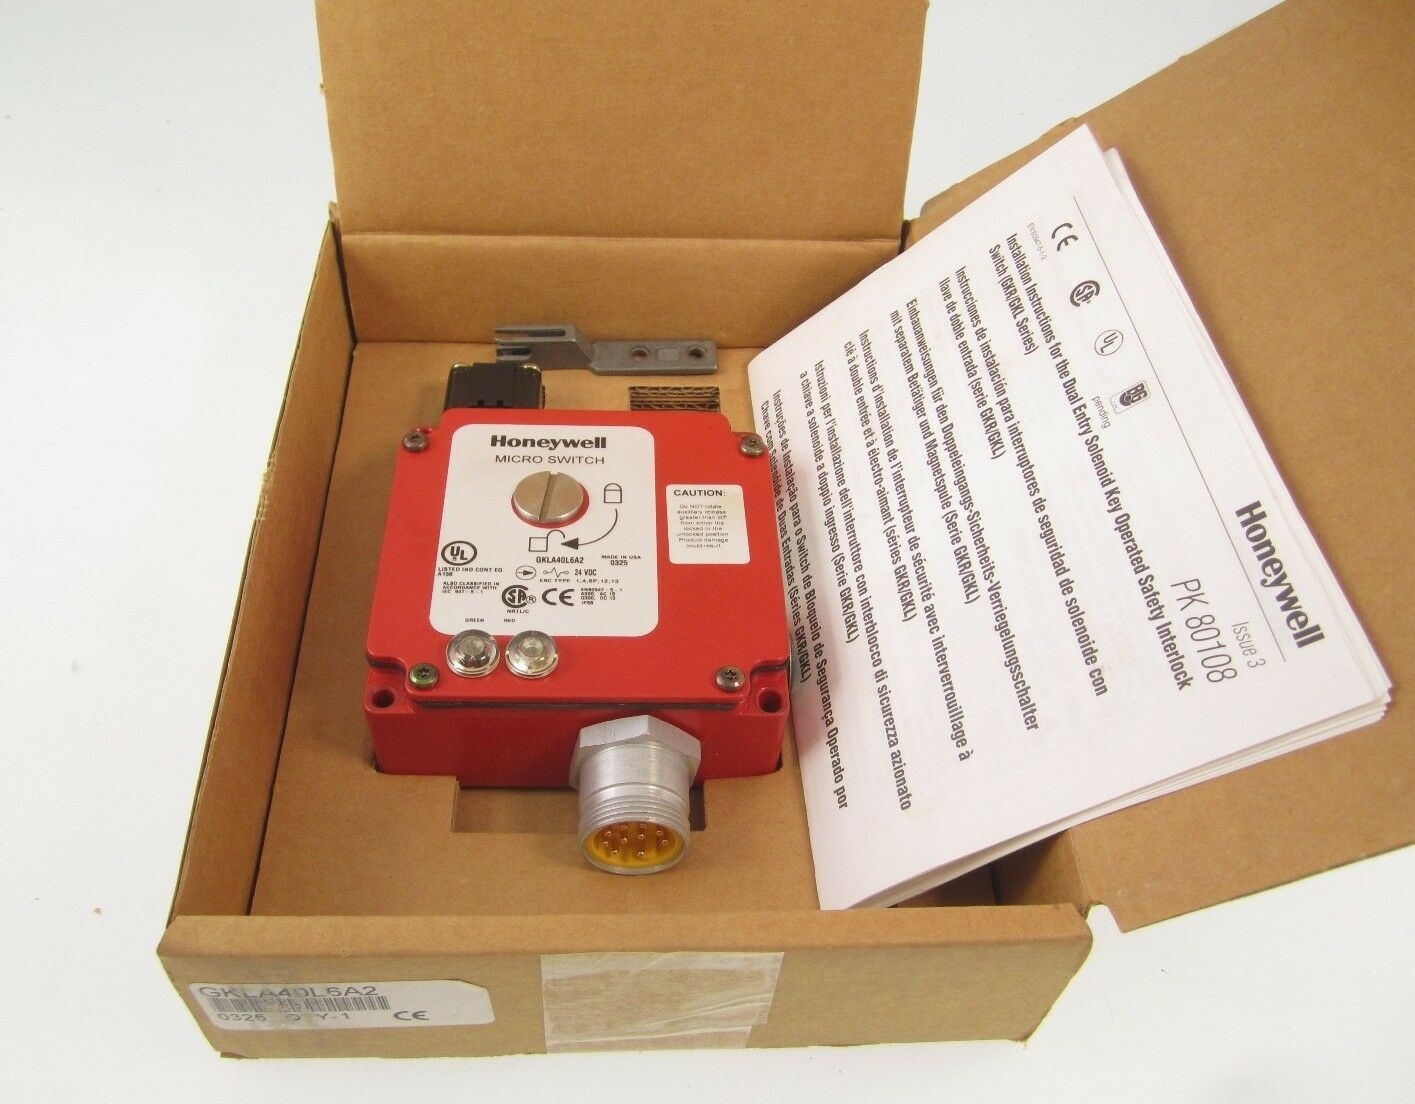 NEW IN BOX HONEYWELL GKLA40L6A2 MICRO SWITCH 24VDC PK 80108